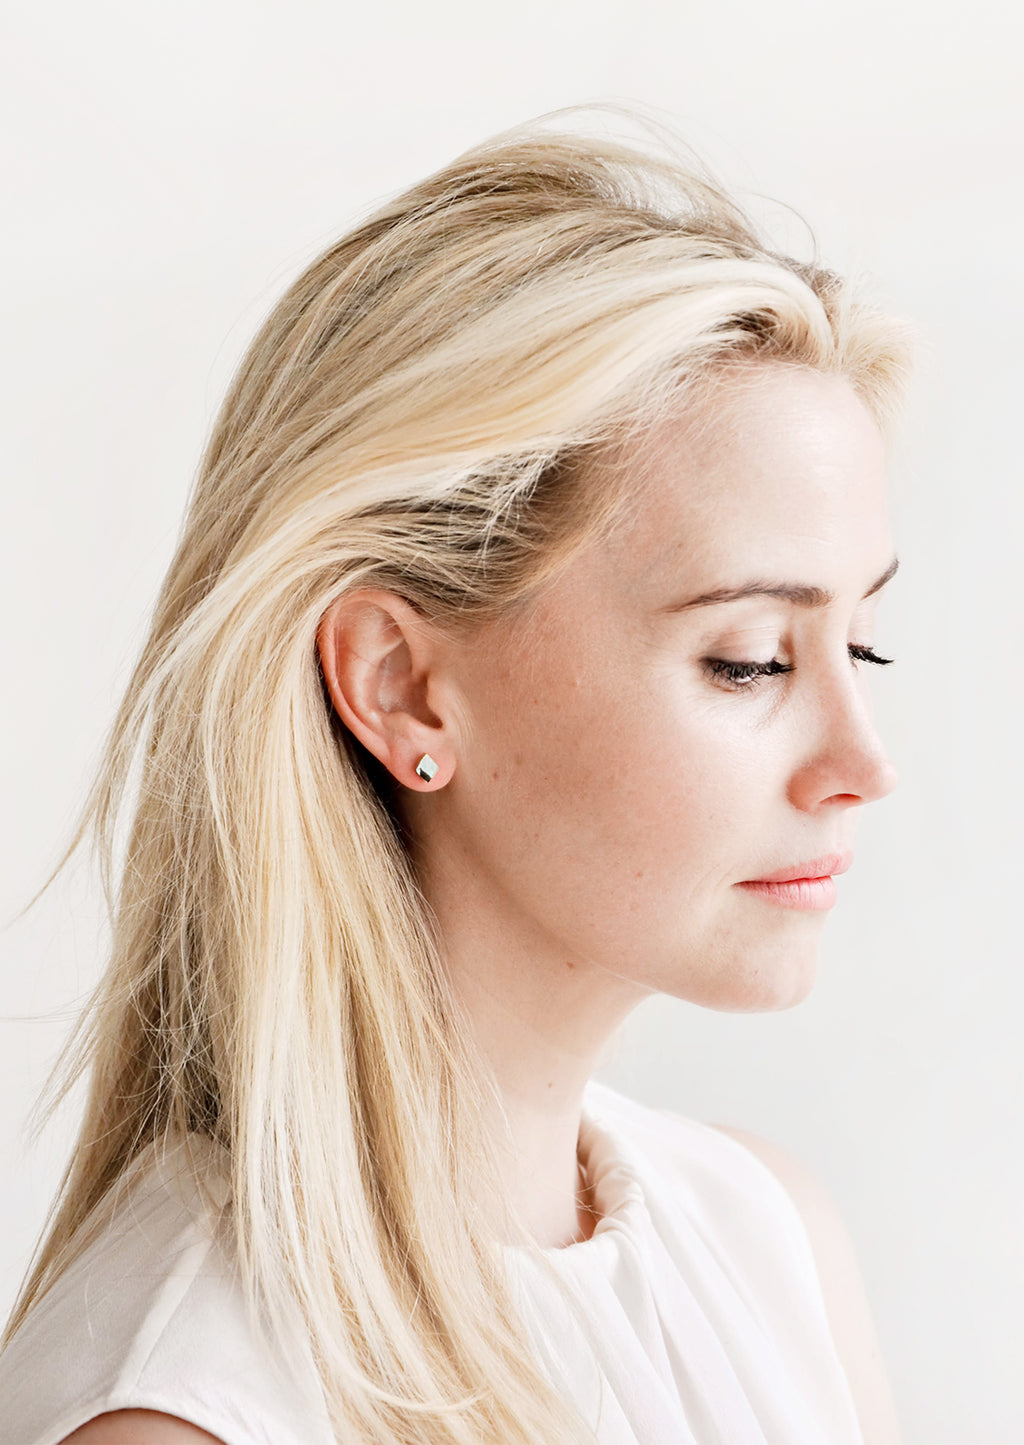 2: Blonde model wearing diamond shaped stud earrings.